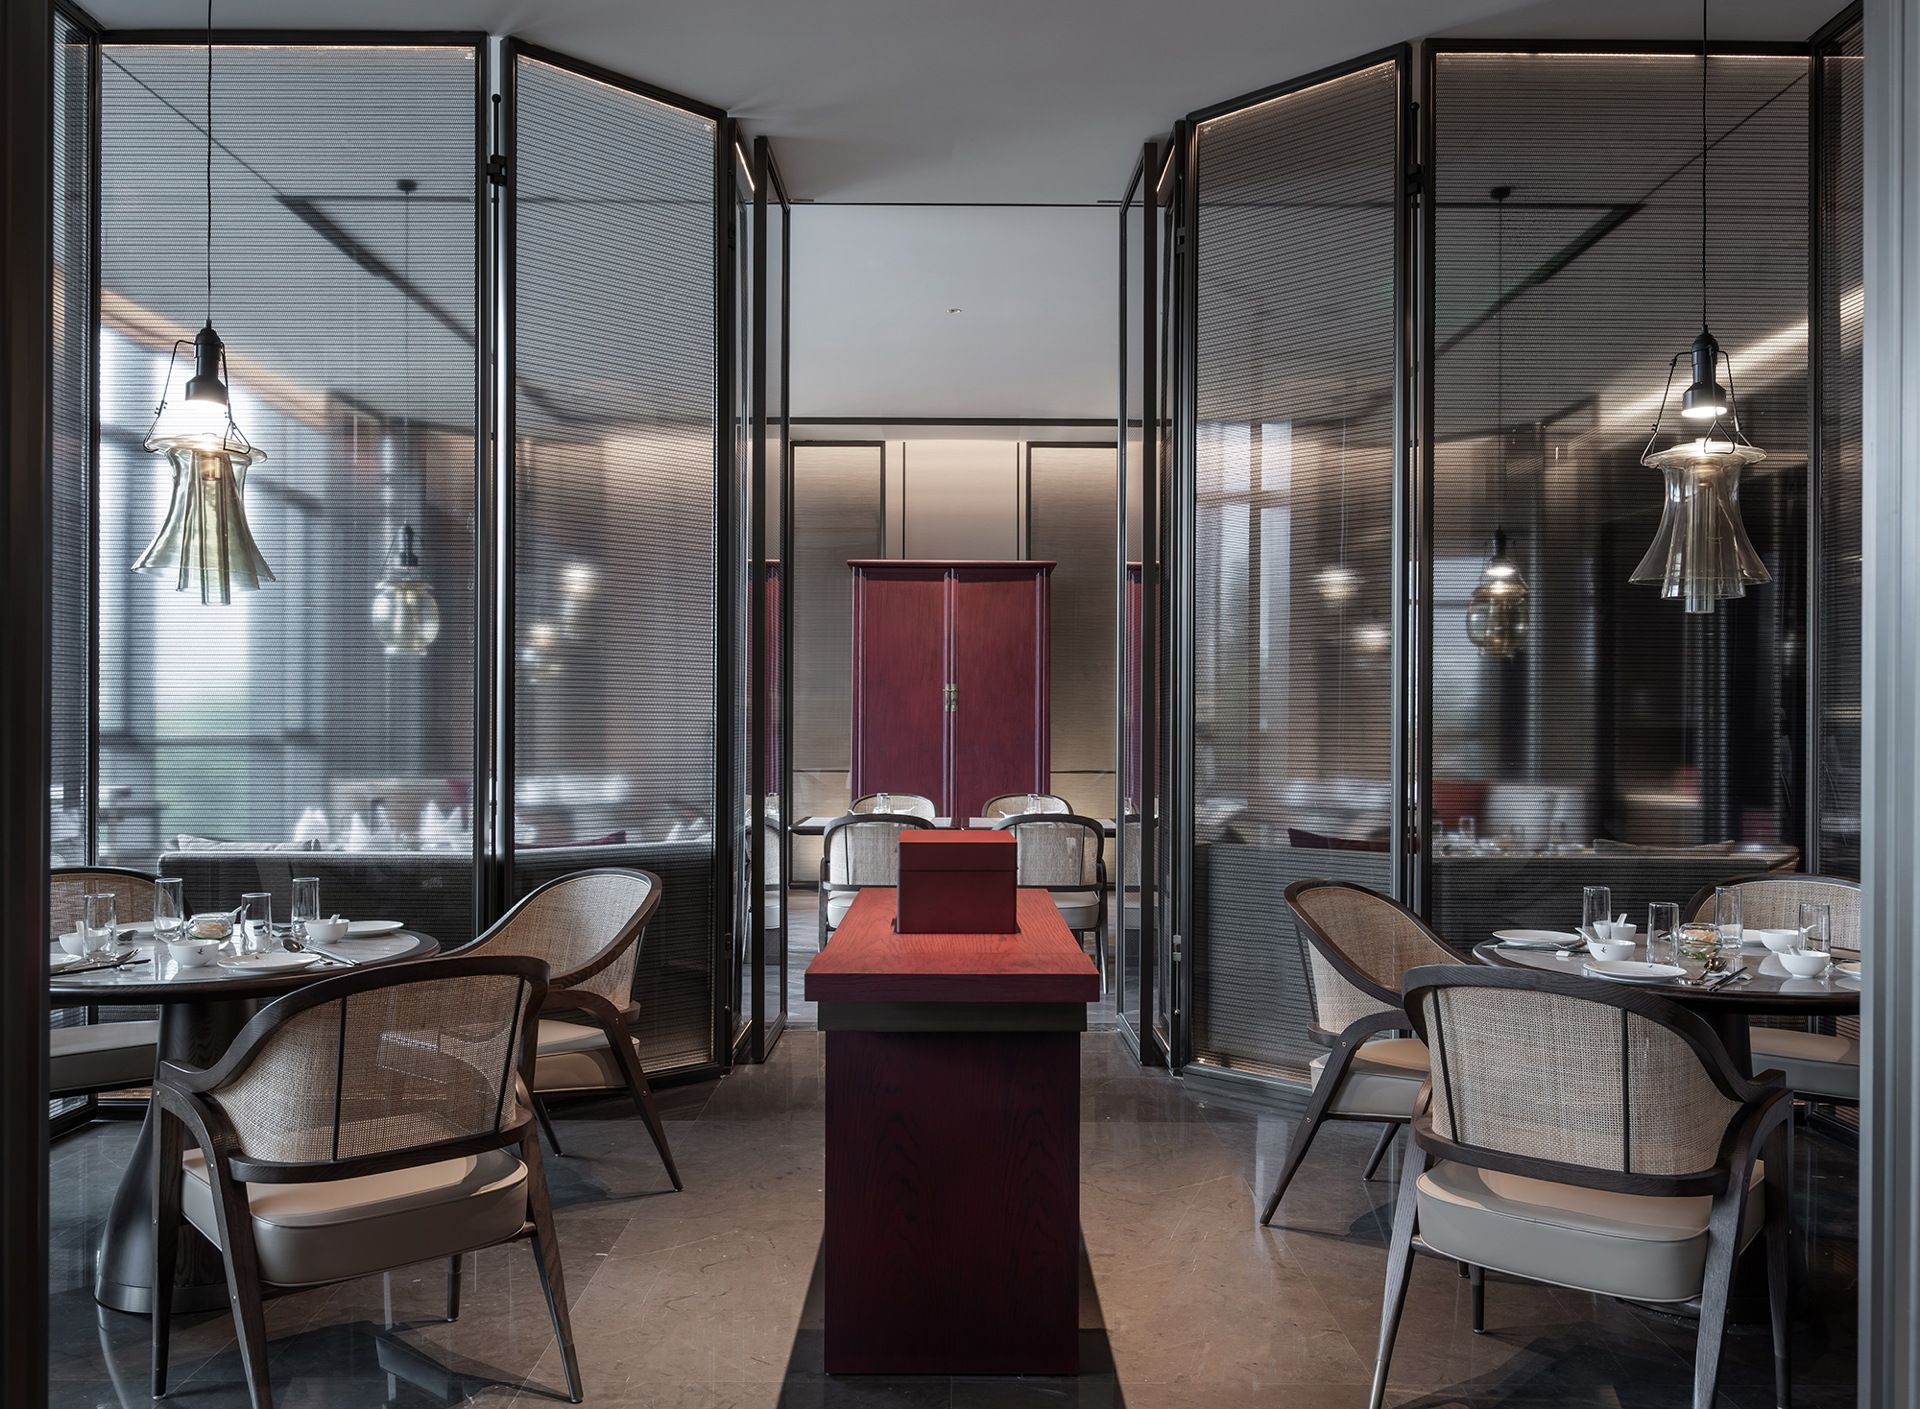 Hualuxe Xi An Hitech Zone By Ccd Livegreenblog In 2020 Interior Hotel Interiors Hotels Design